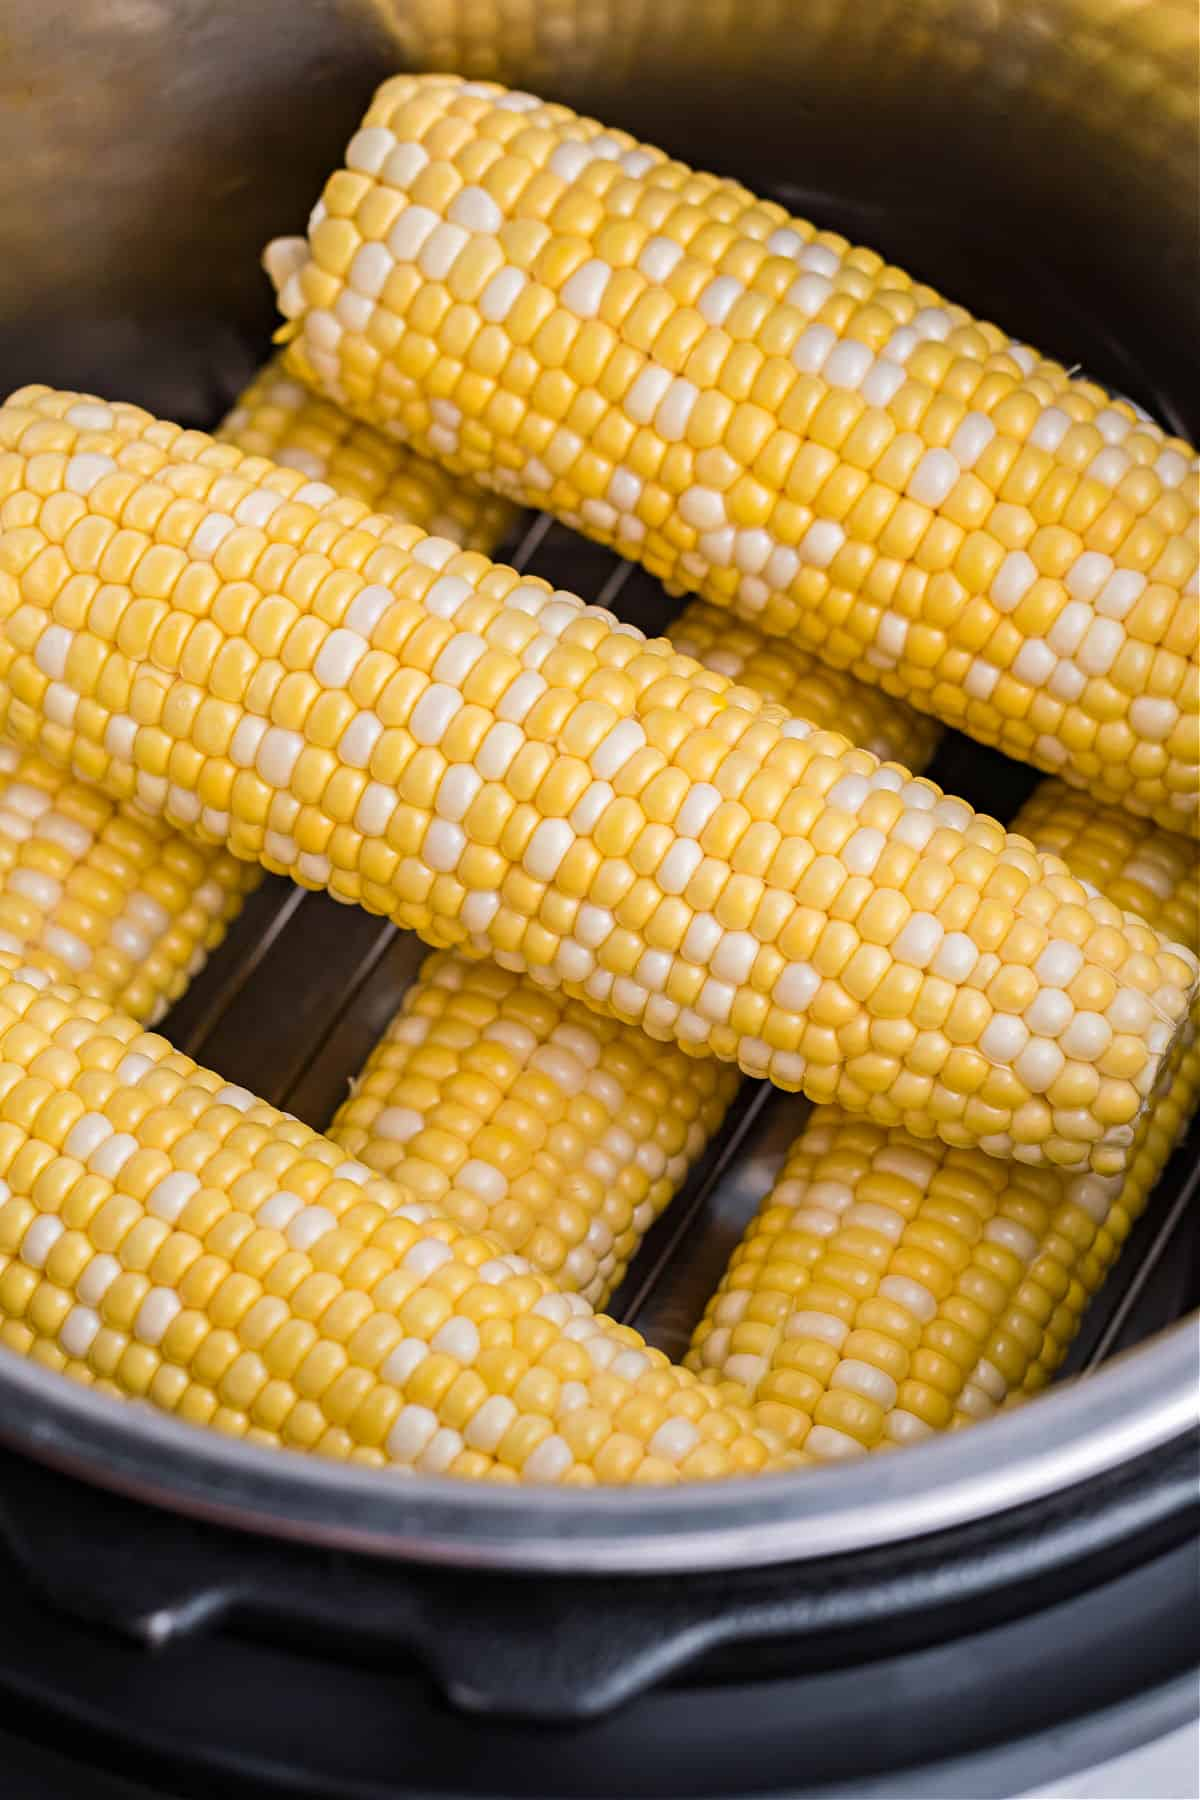 Ears of corn stacked on a trivet inside the instant pot.